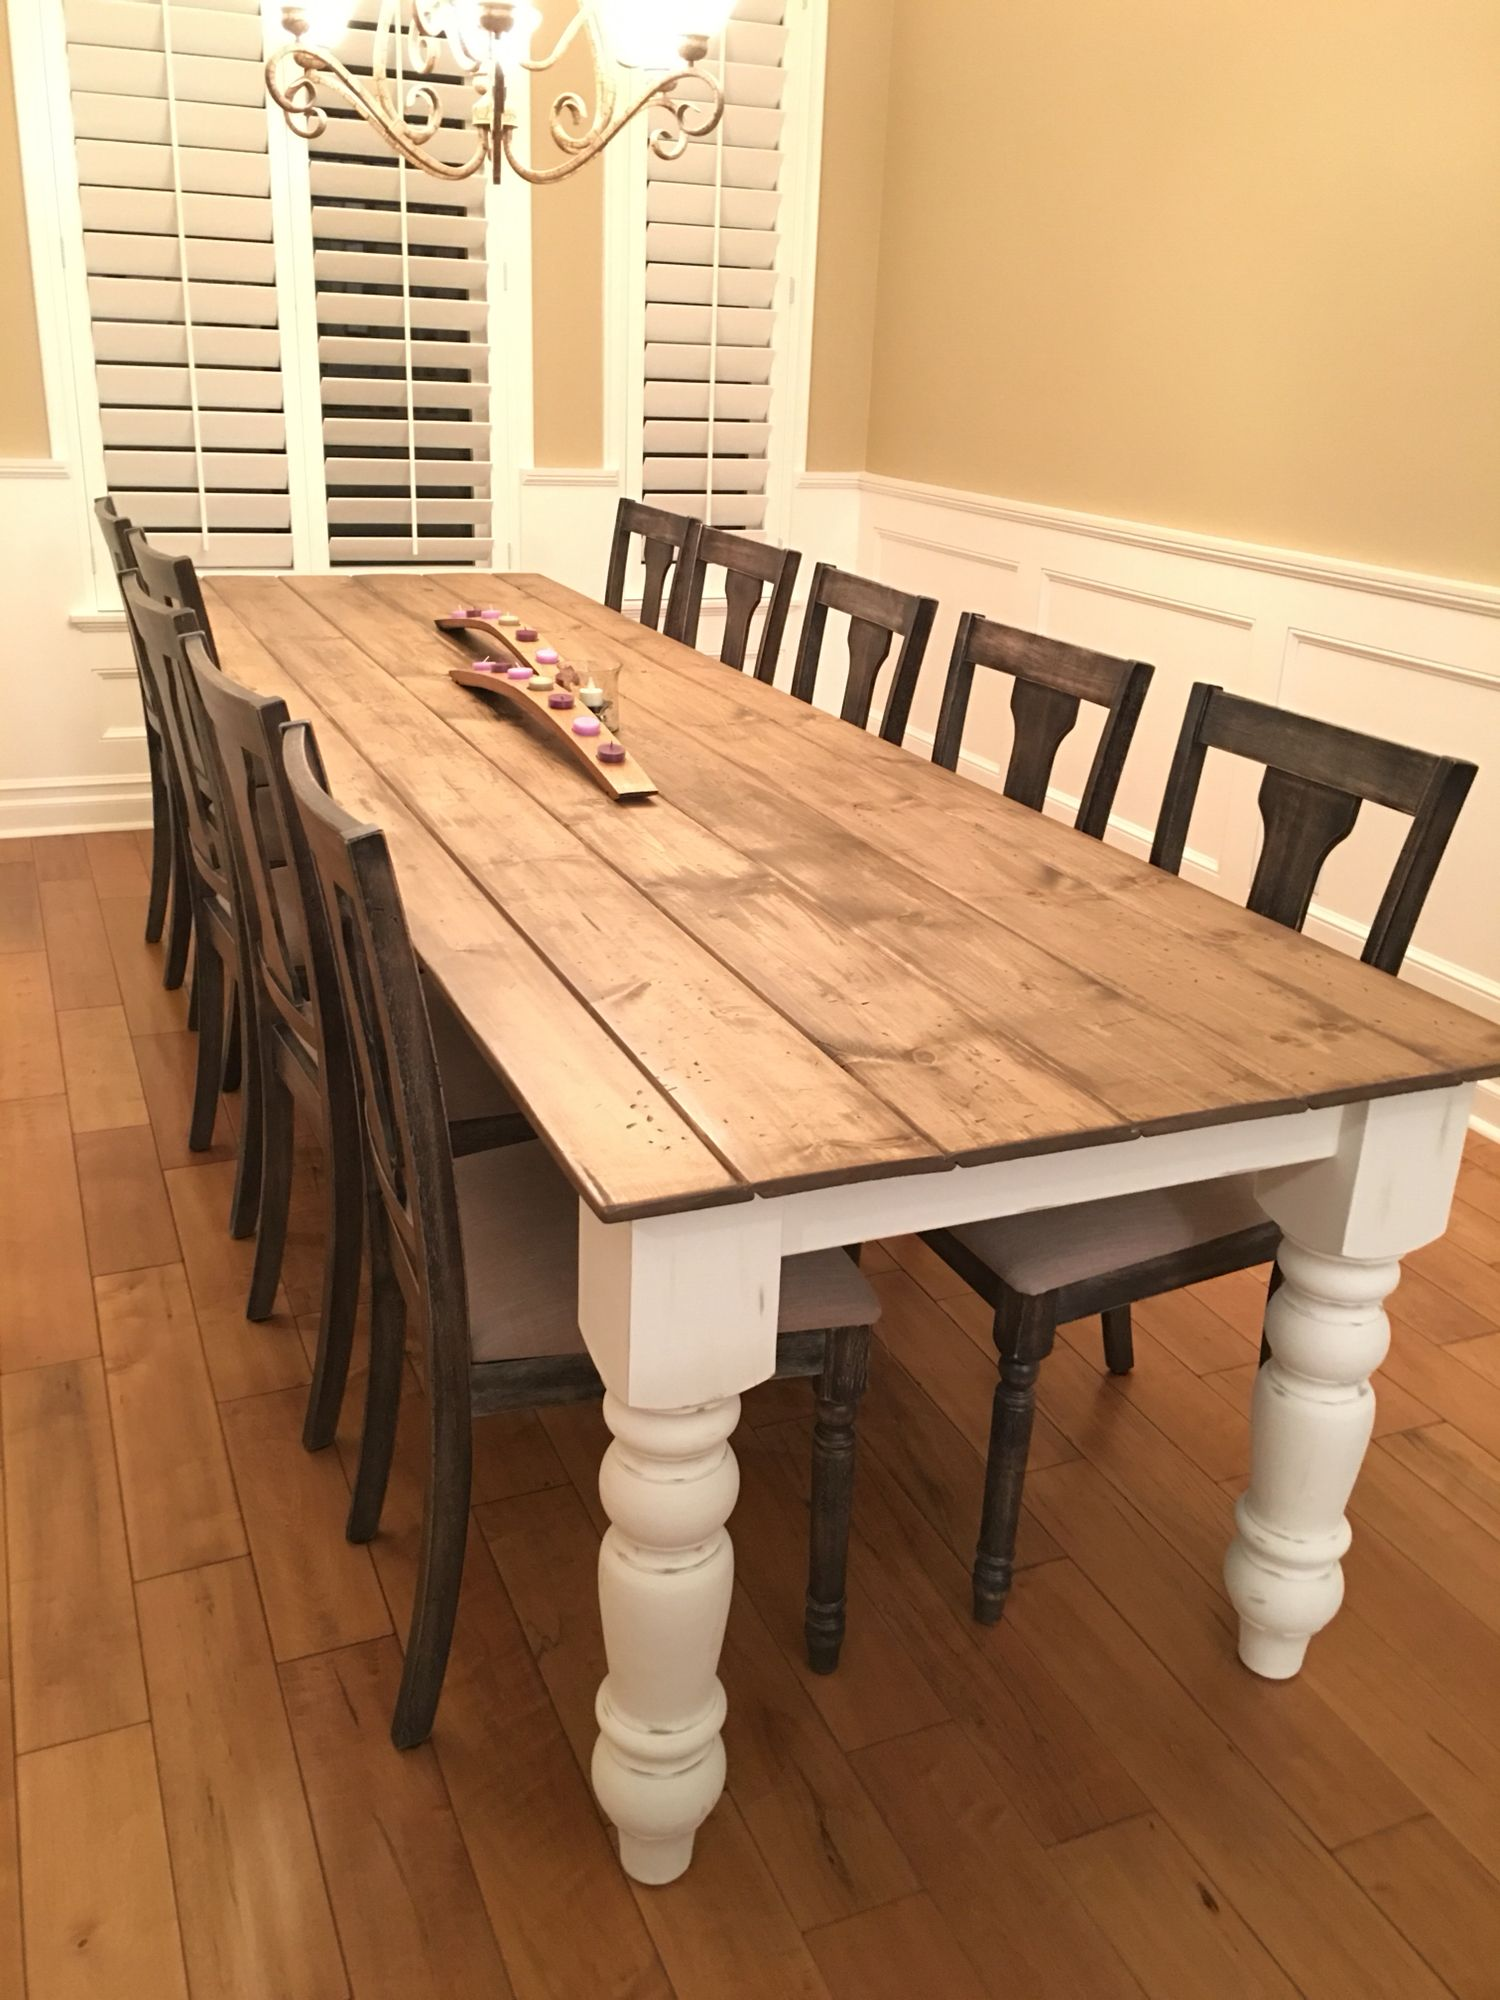 10 Seater Kitchen Table Diy Farmhouse Table My Husband Made My 10 Foot 8 Inch Farmhouse